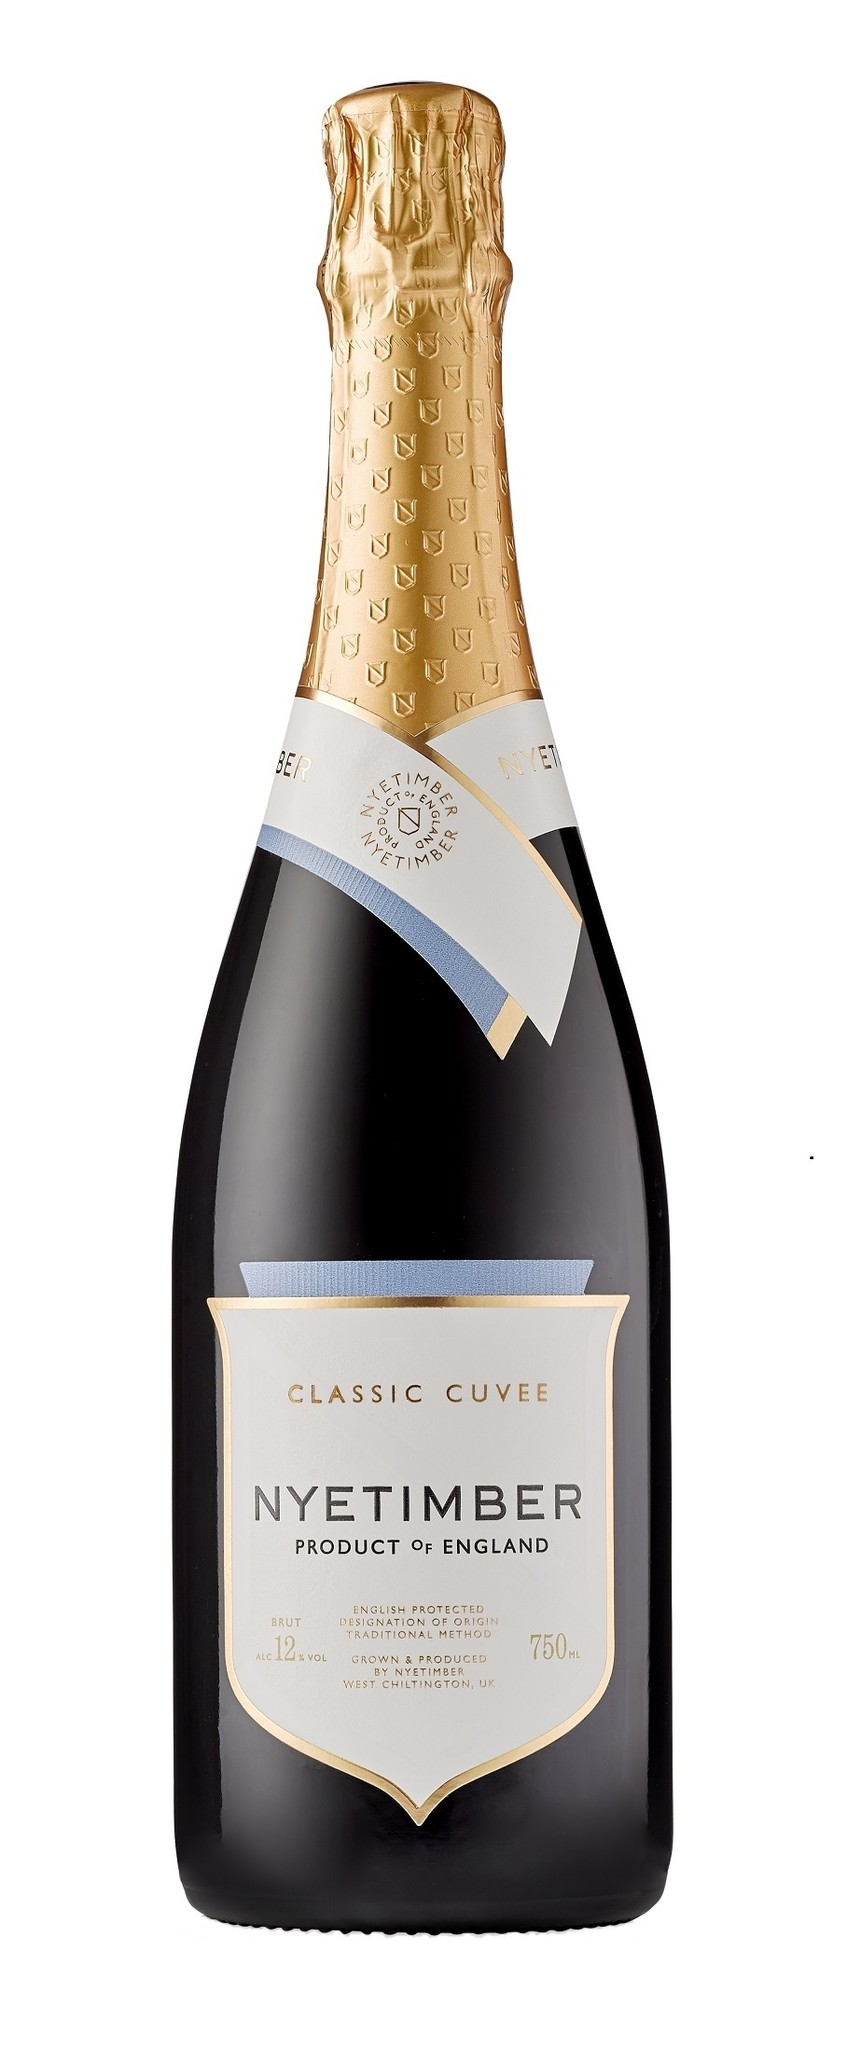 Nyetimber - West Sussex Classic Cuvee Schaumwein England, Nyetimber